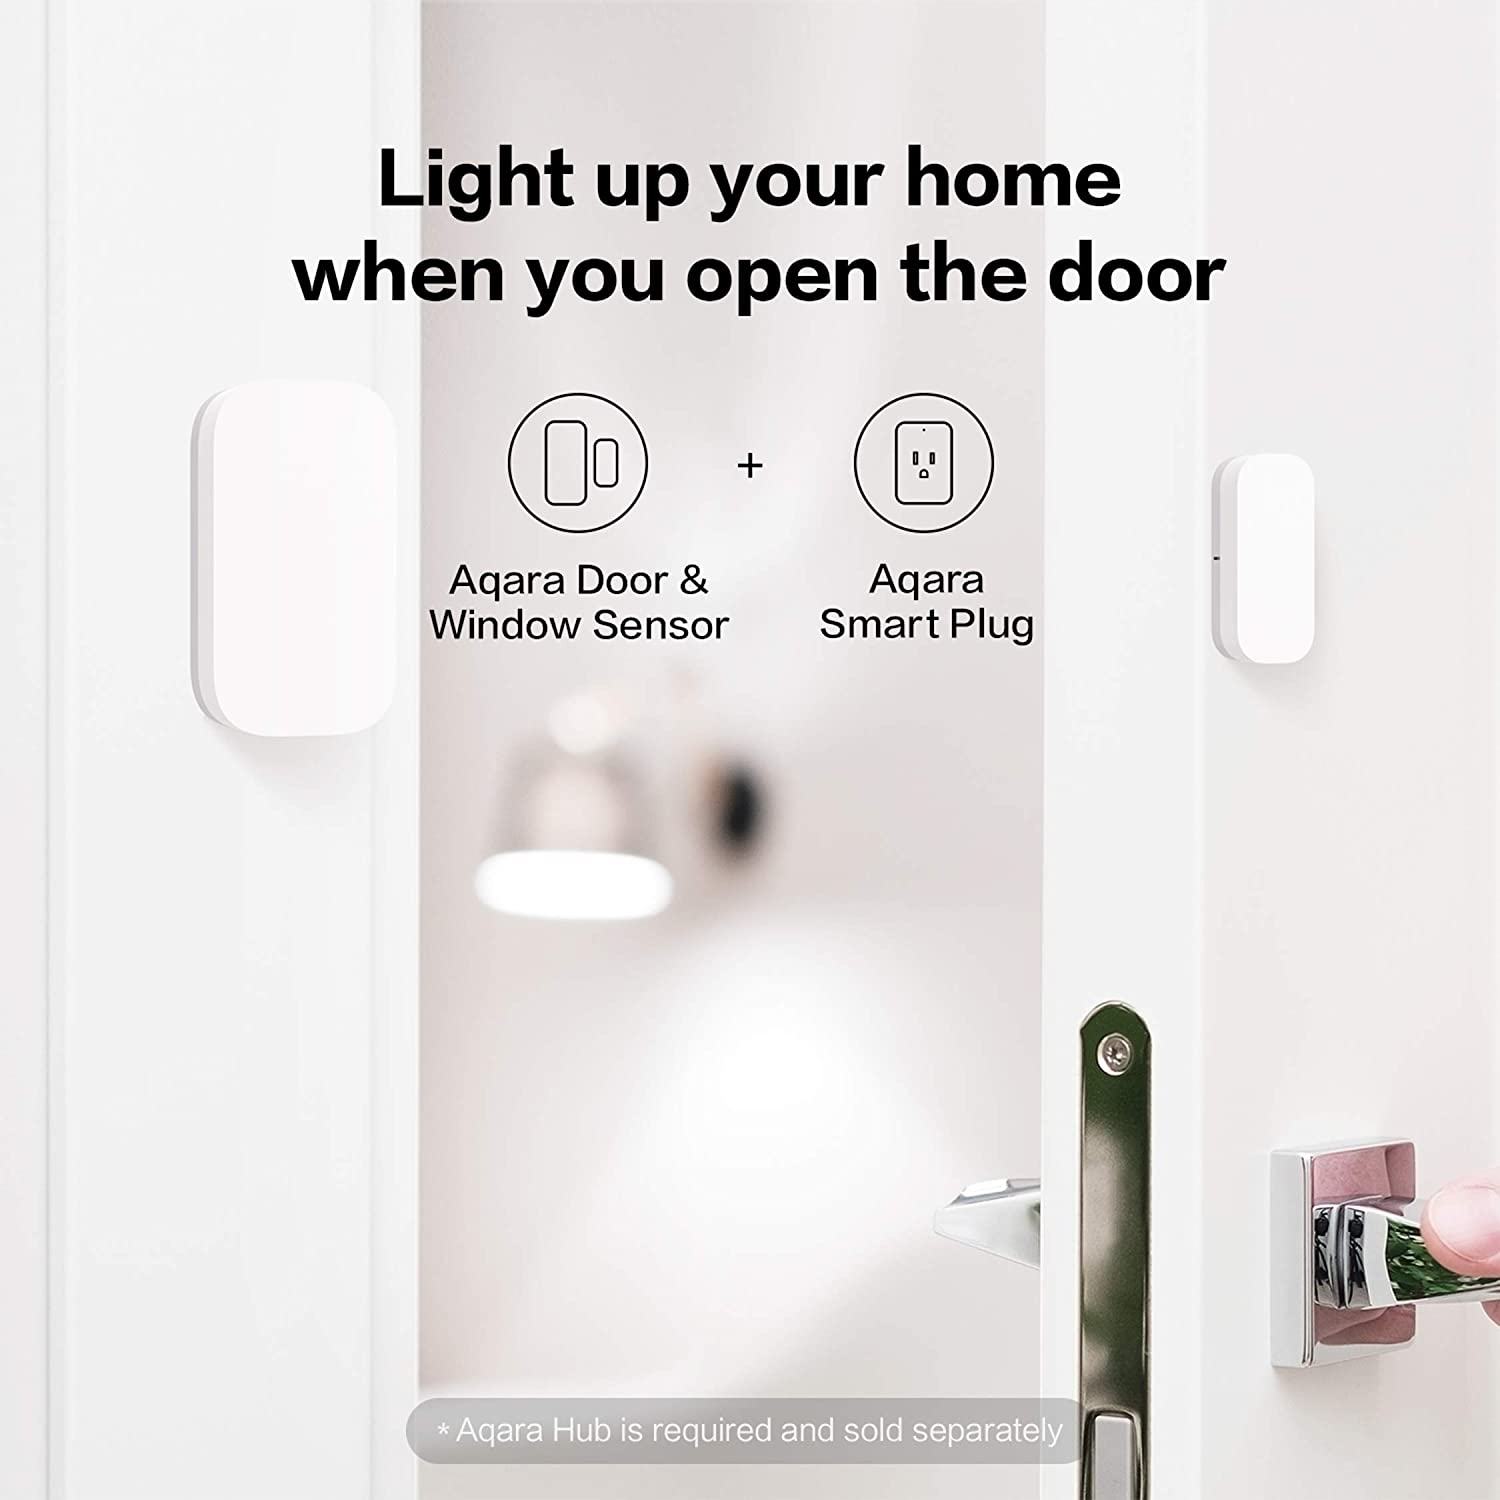 Aqara Smart Plug Scheduling and Voice Control capabilities Works with Alexa and Apple HomeKit Compatible Google Assistant with Energy Monitoring Requires Aqara Hub Overload Protection